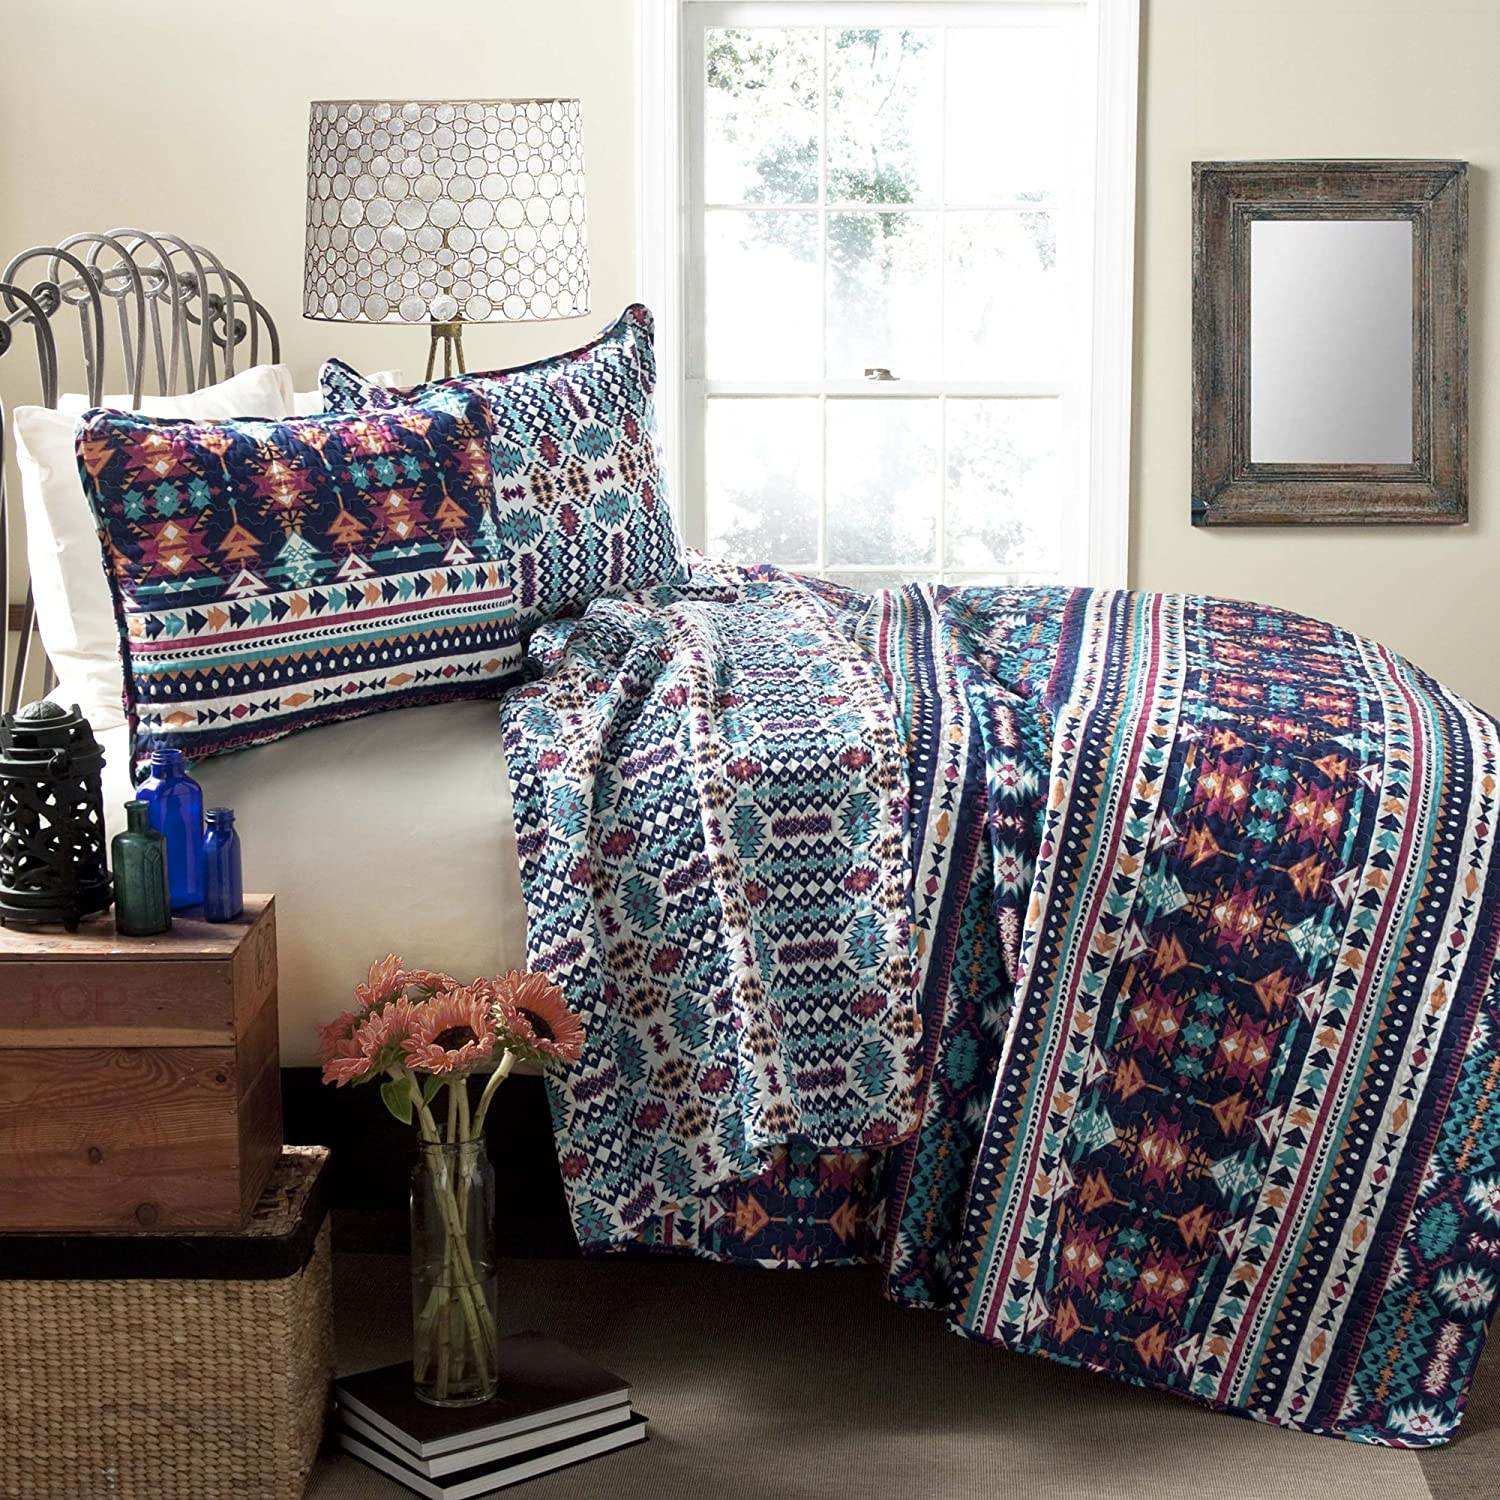 Lush Decor Navajo 3-Piece Quilt Set Full//Queen Navy//Turquoise Triangle Home Fashions C21989P14-000